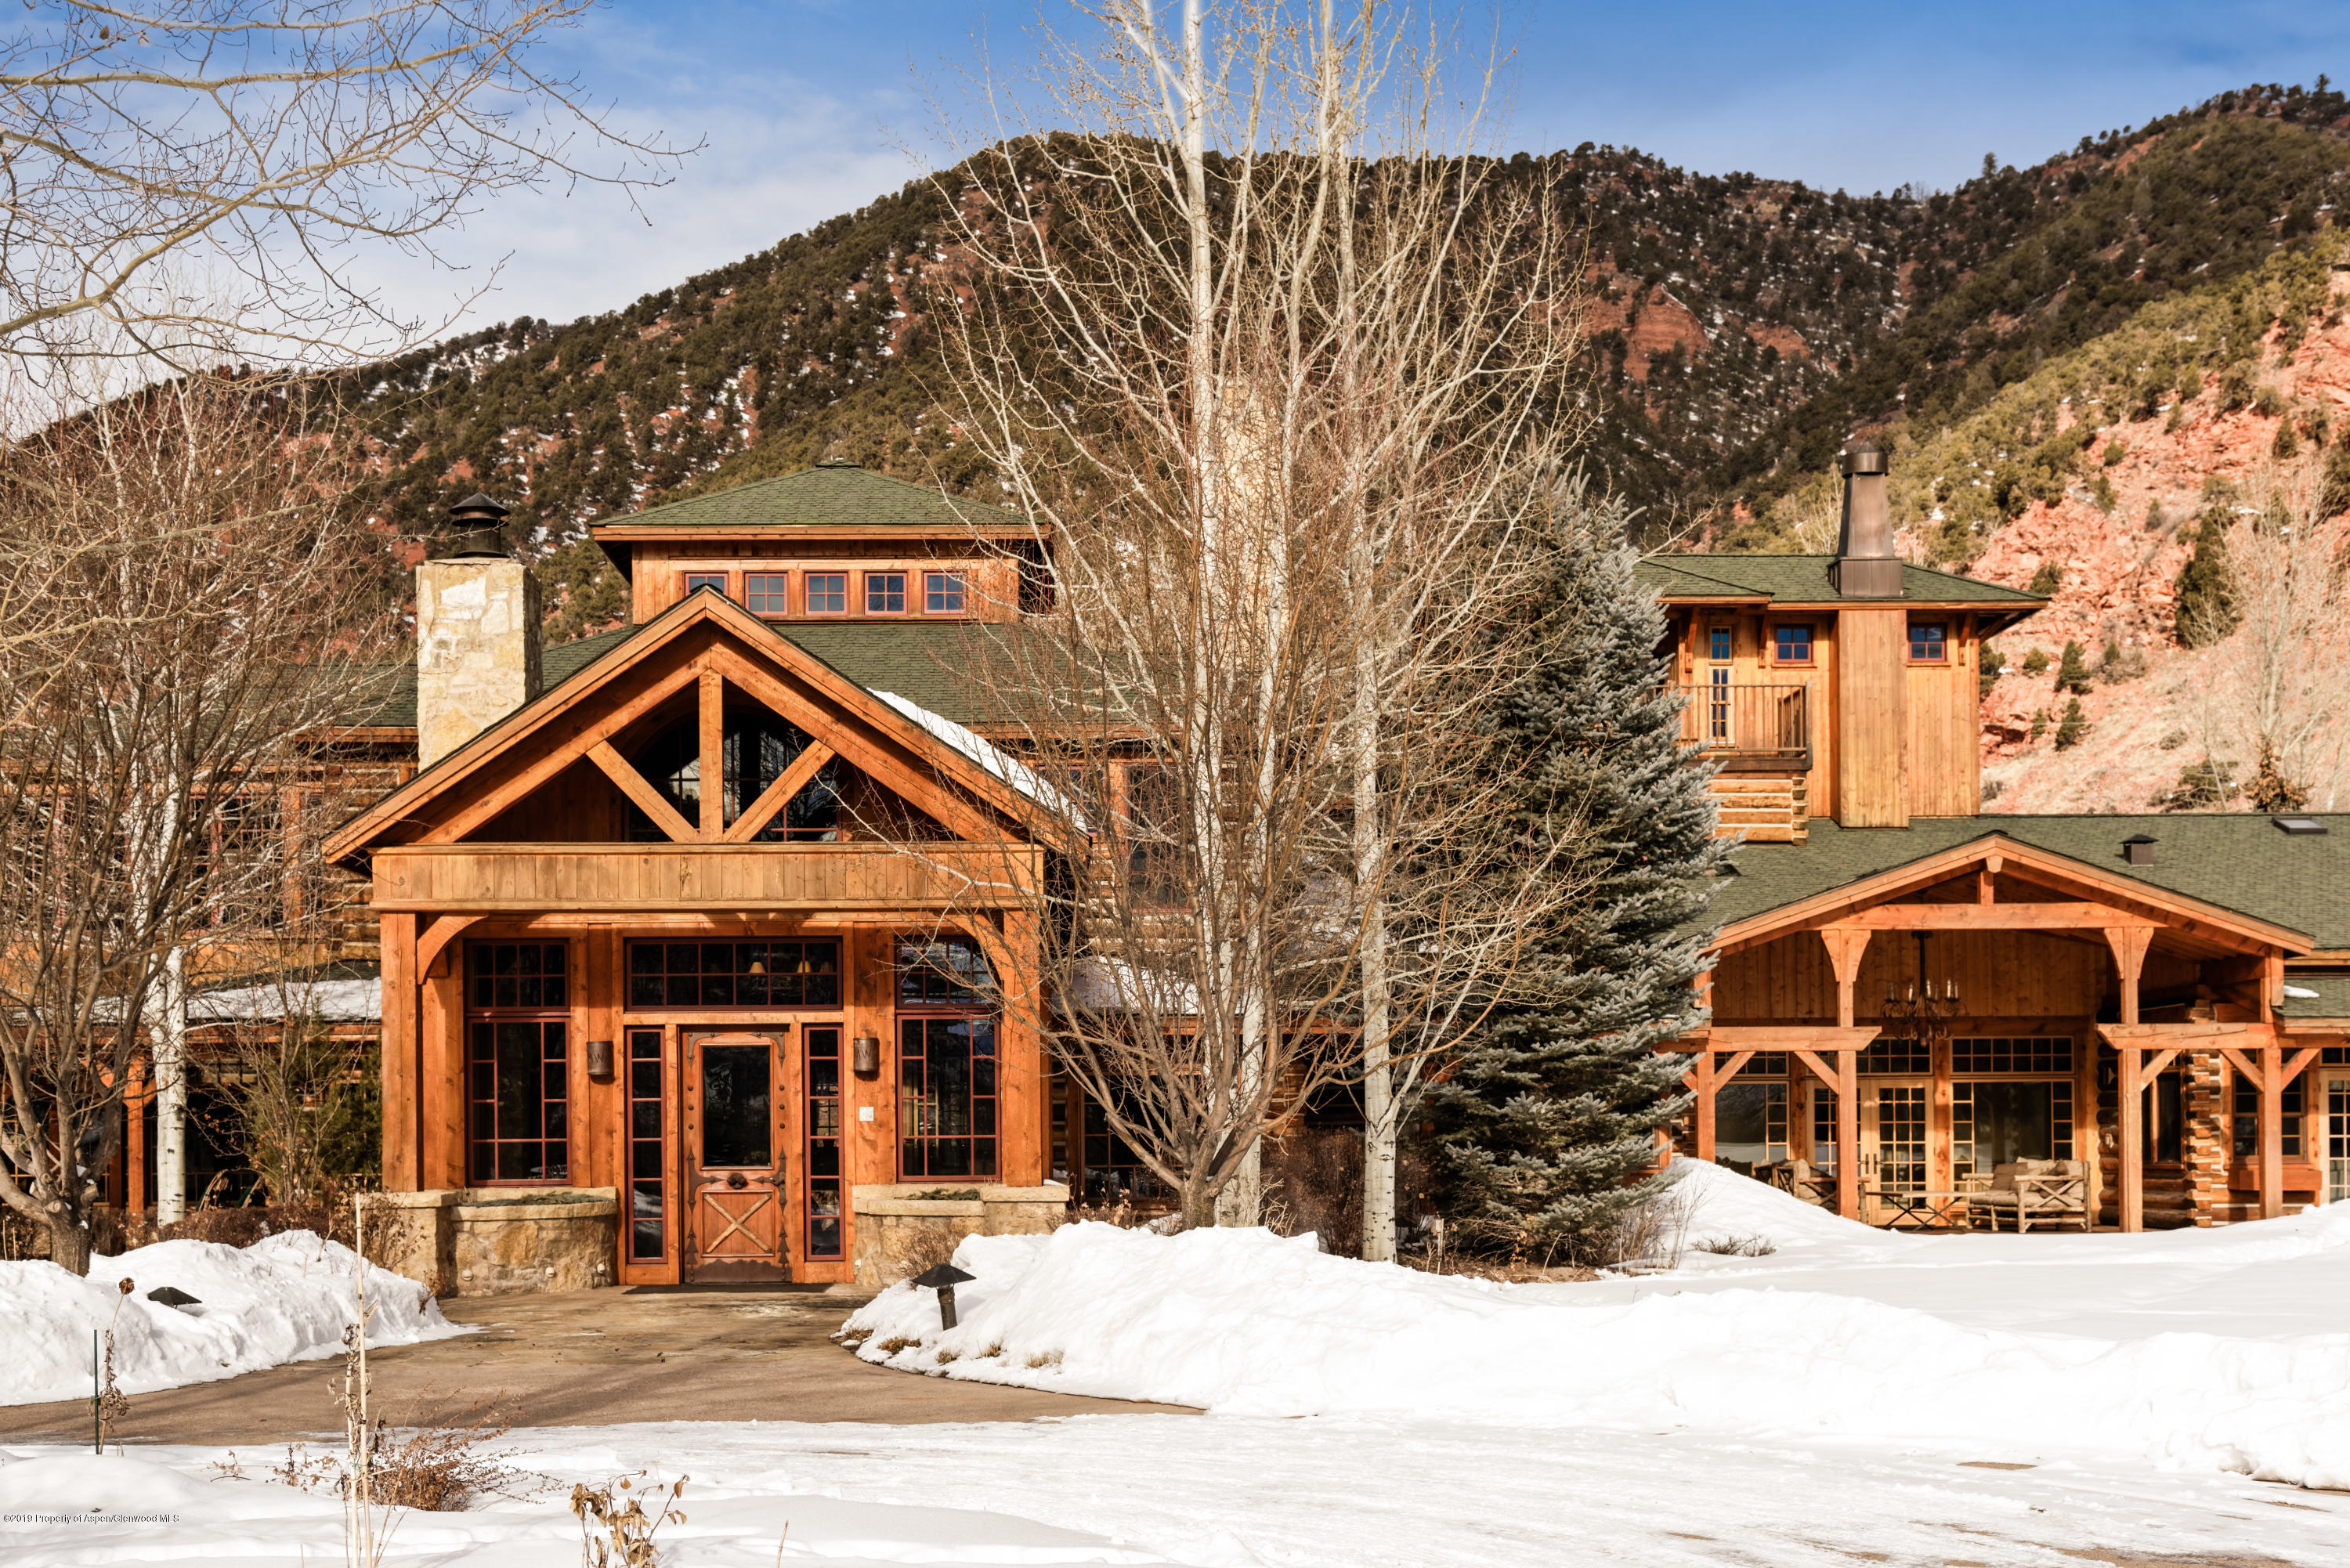 MLS# 135595 - 71 - 50 E River Ranch Road, Snowmass, CO 81654